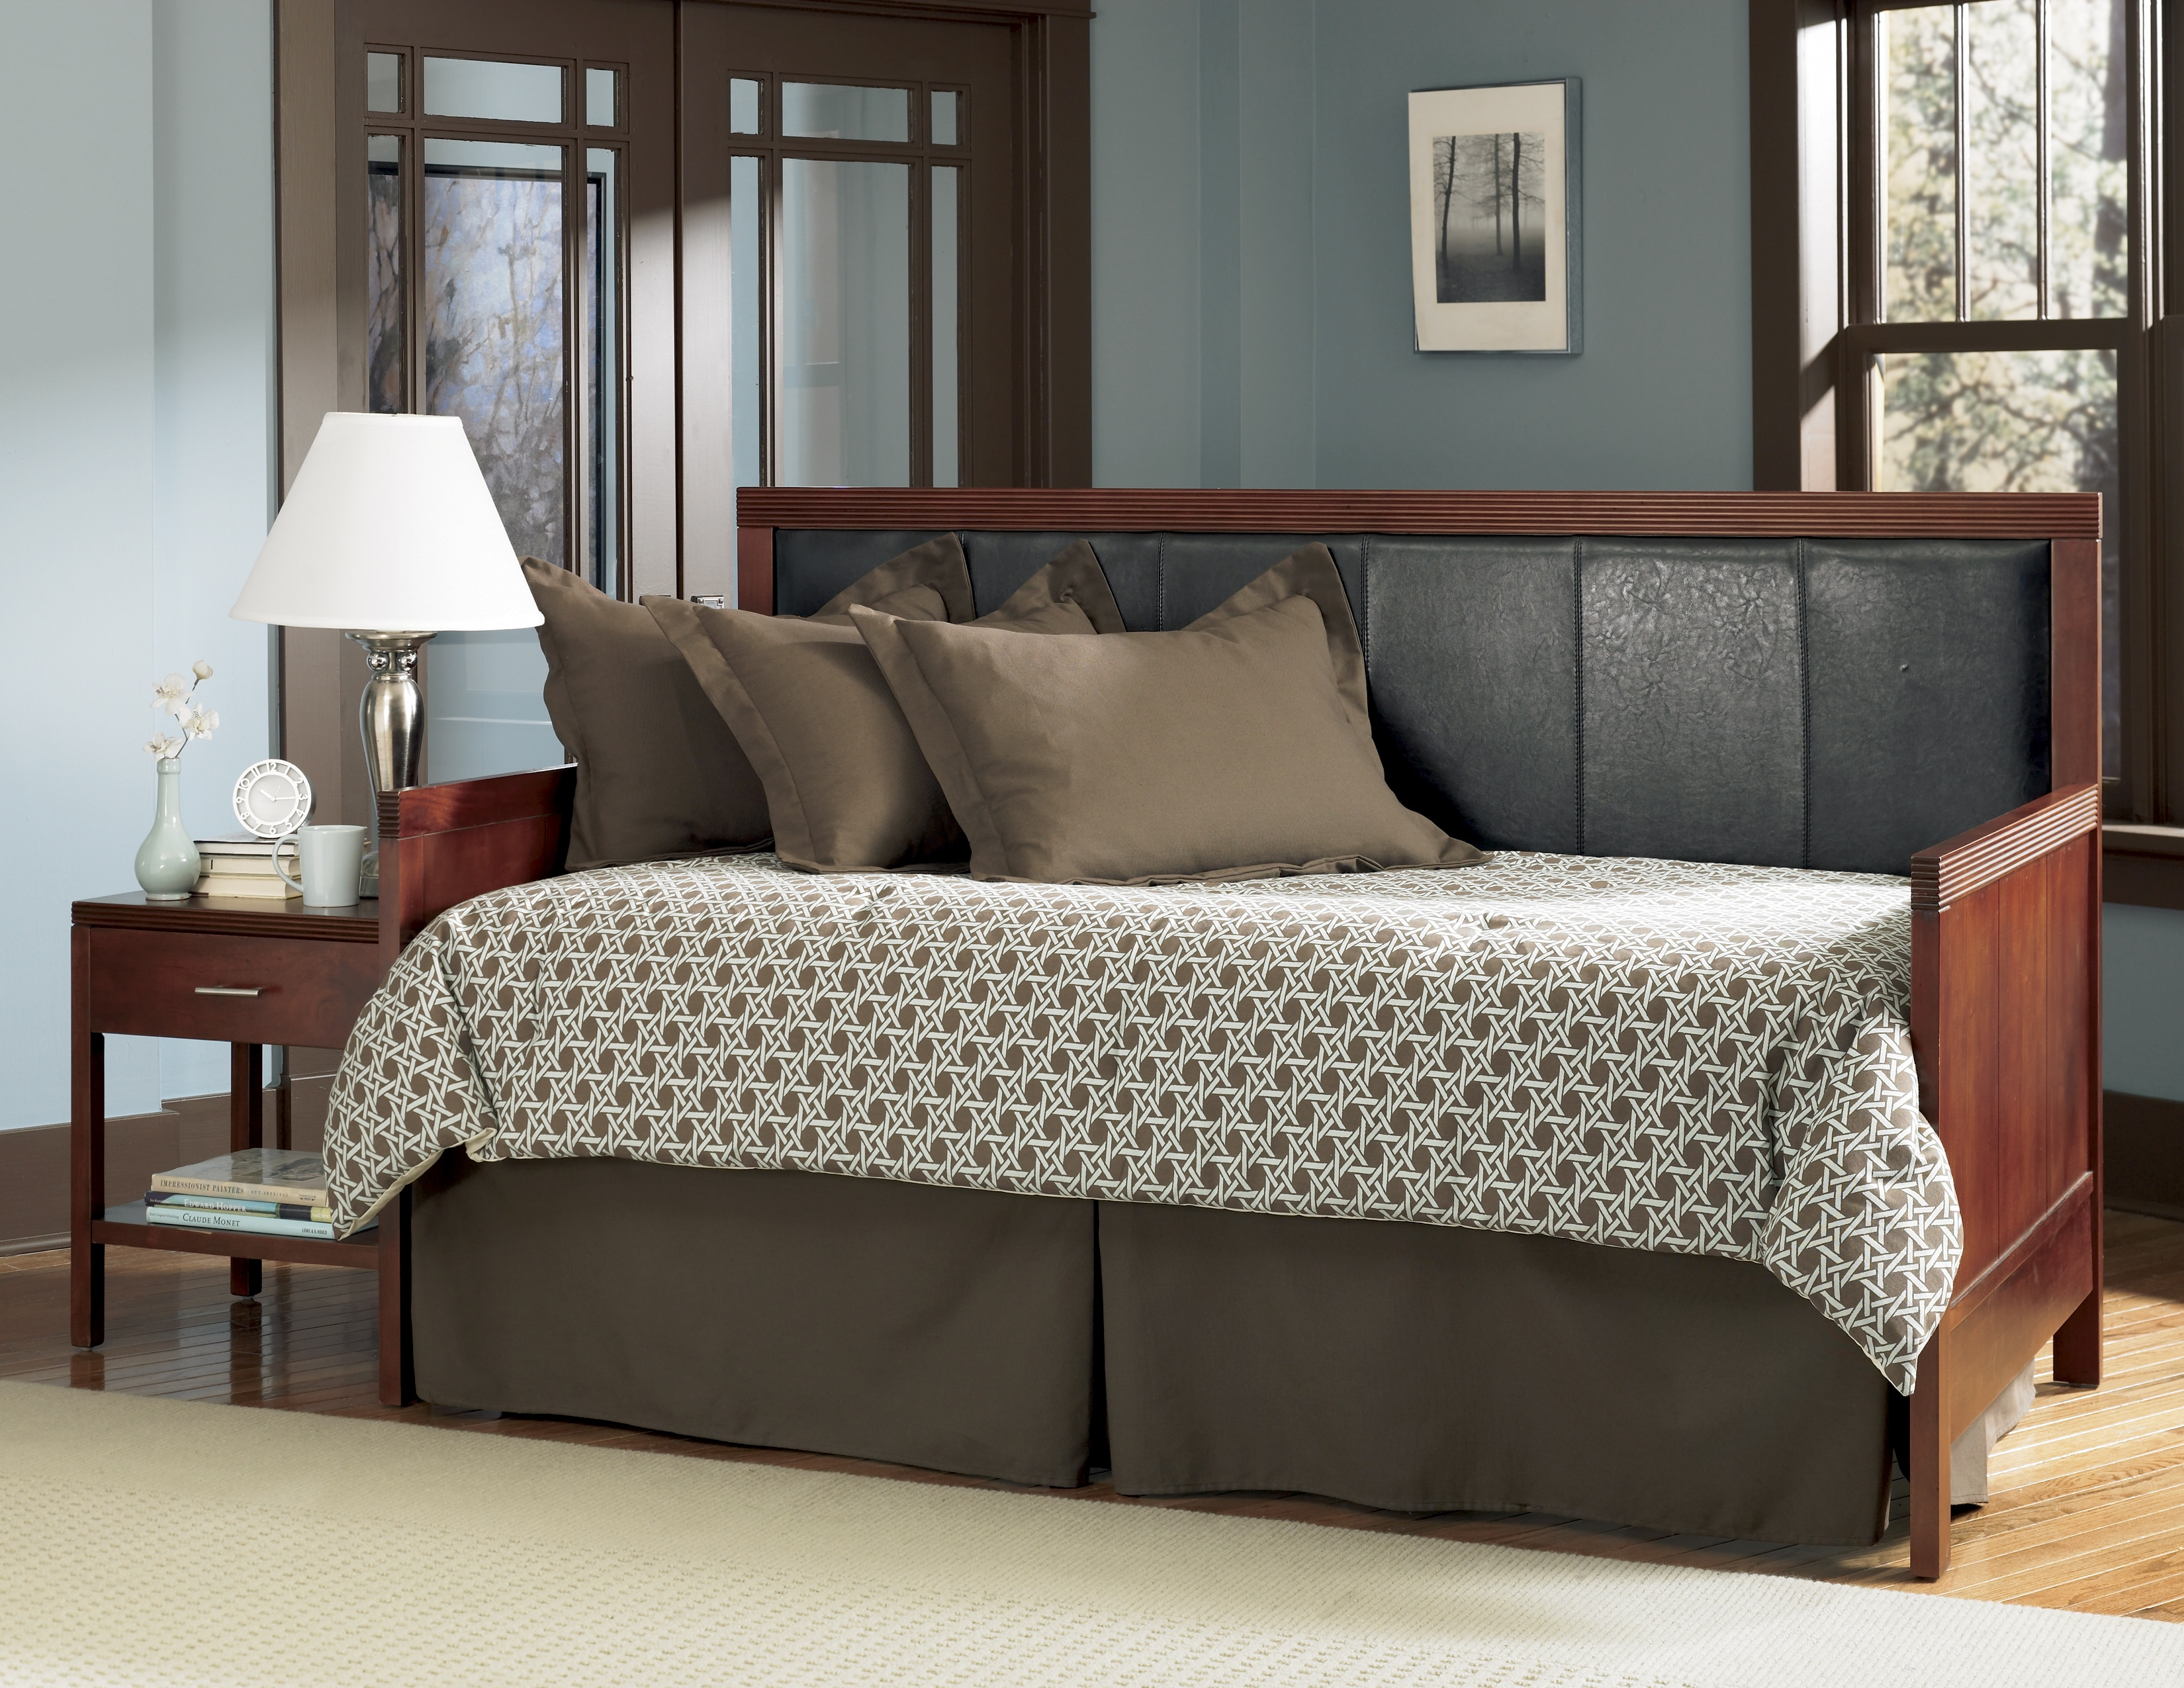 Gramercy Daybed/ Sofa   Overstock Shopping   Great Deals ...